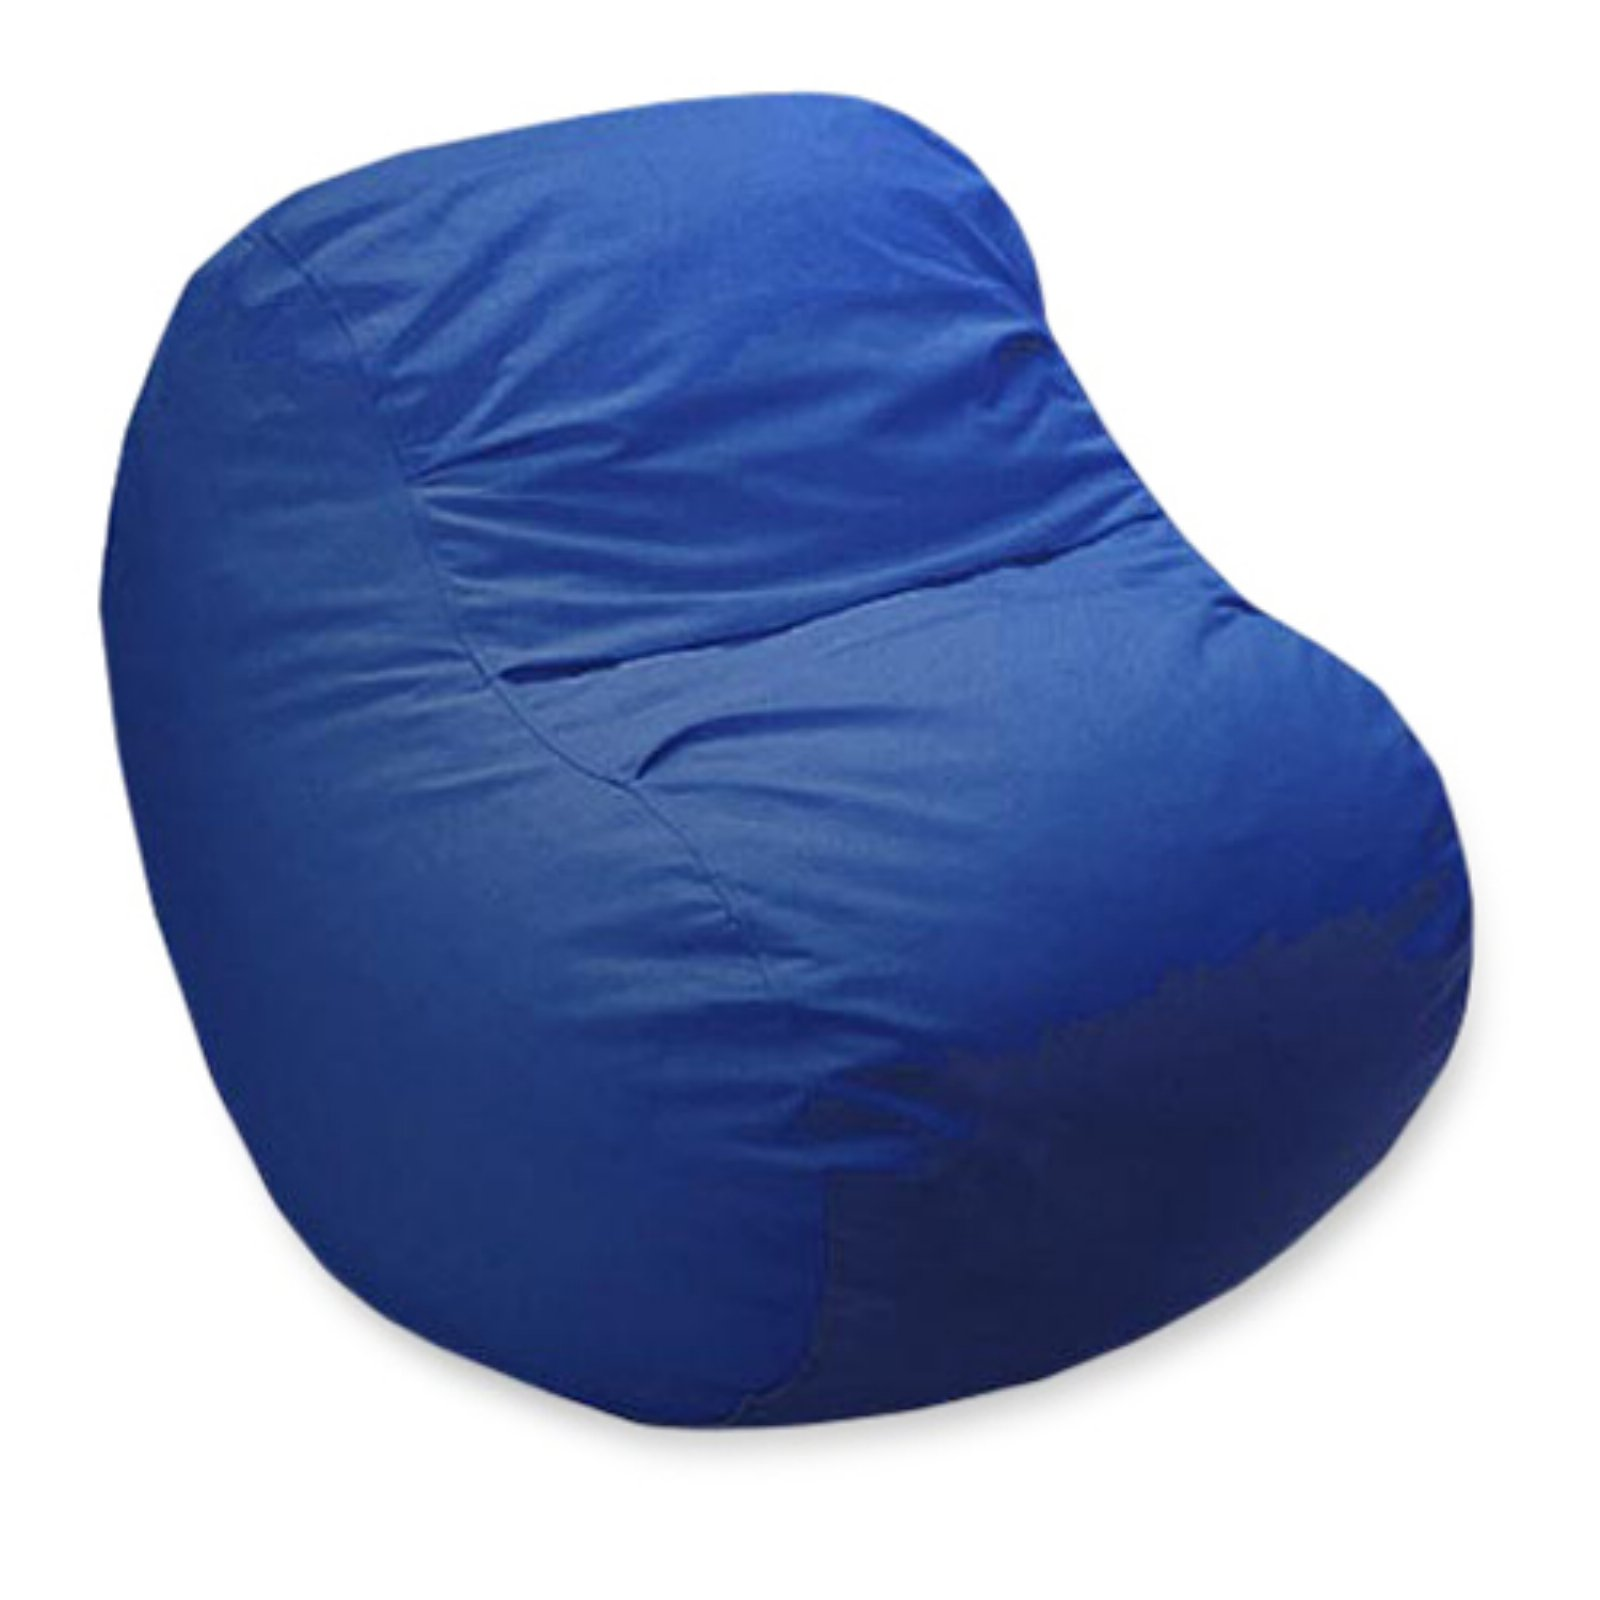 Nice Large Big Bean Denim Bean Bag Chair   Walmart.com